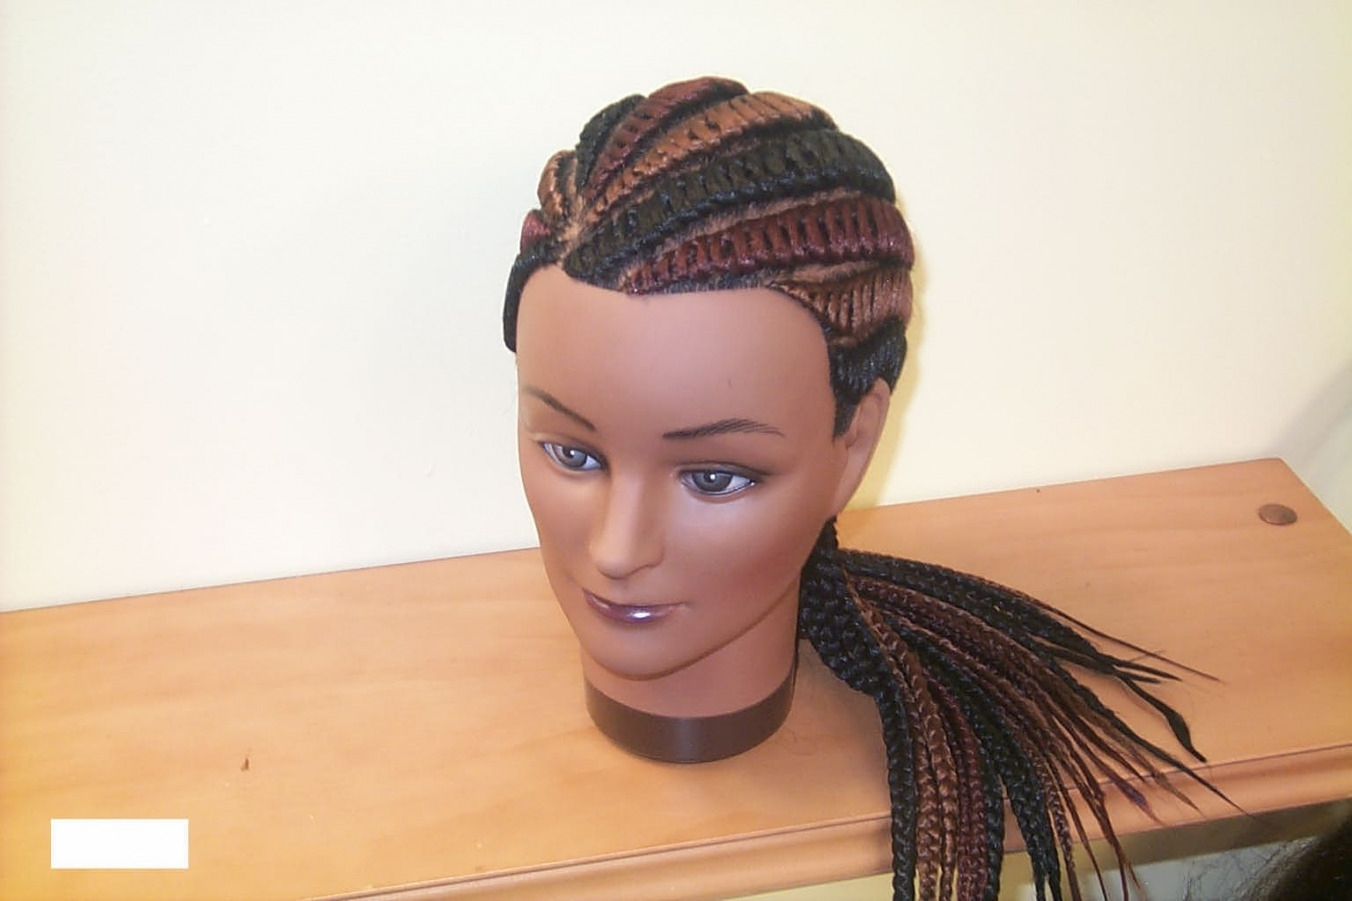 Current Cornrows Hairstyles With Weave Intended For Weave Cornrow Hairstyles – Hairstyle Of Nowdays (View 11 of 15)